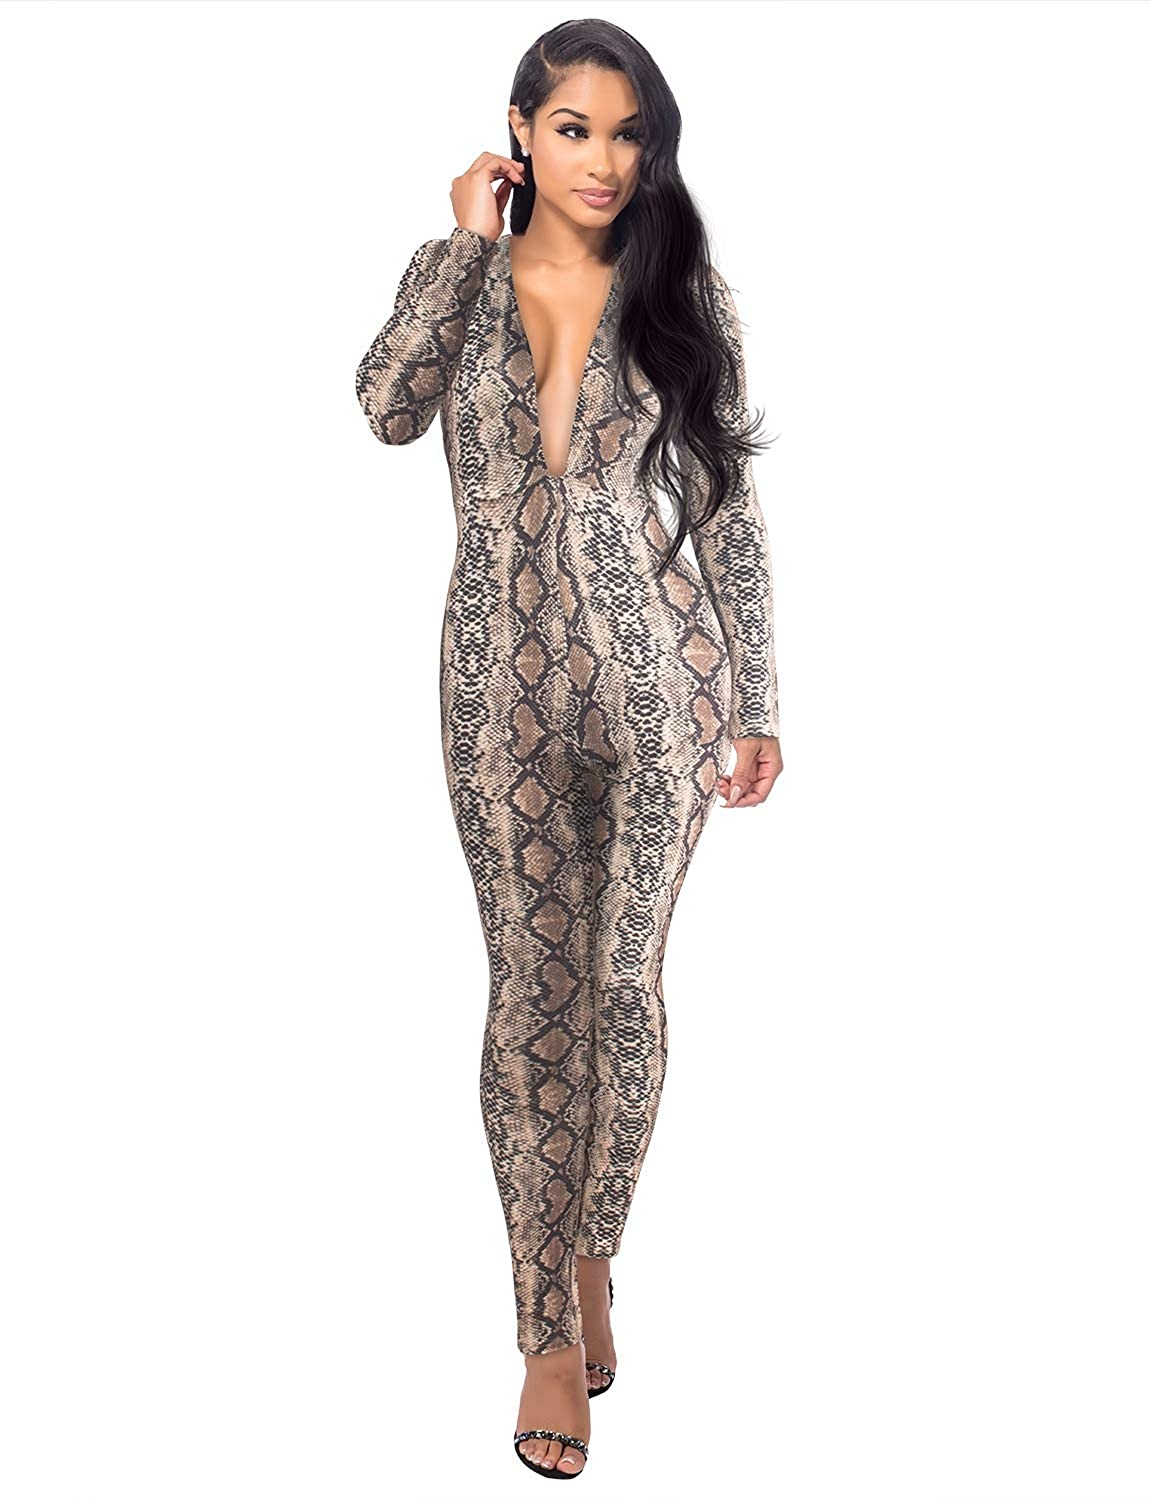 d33d725a4208 Amazon.com  Sedrinuo Women Sexy Snakeskin Long Sleeve Deep V Neck Bodycon Club  Jumpsuits  Clothing